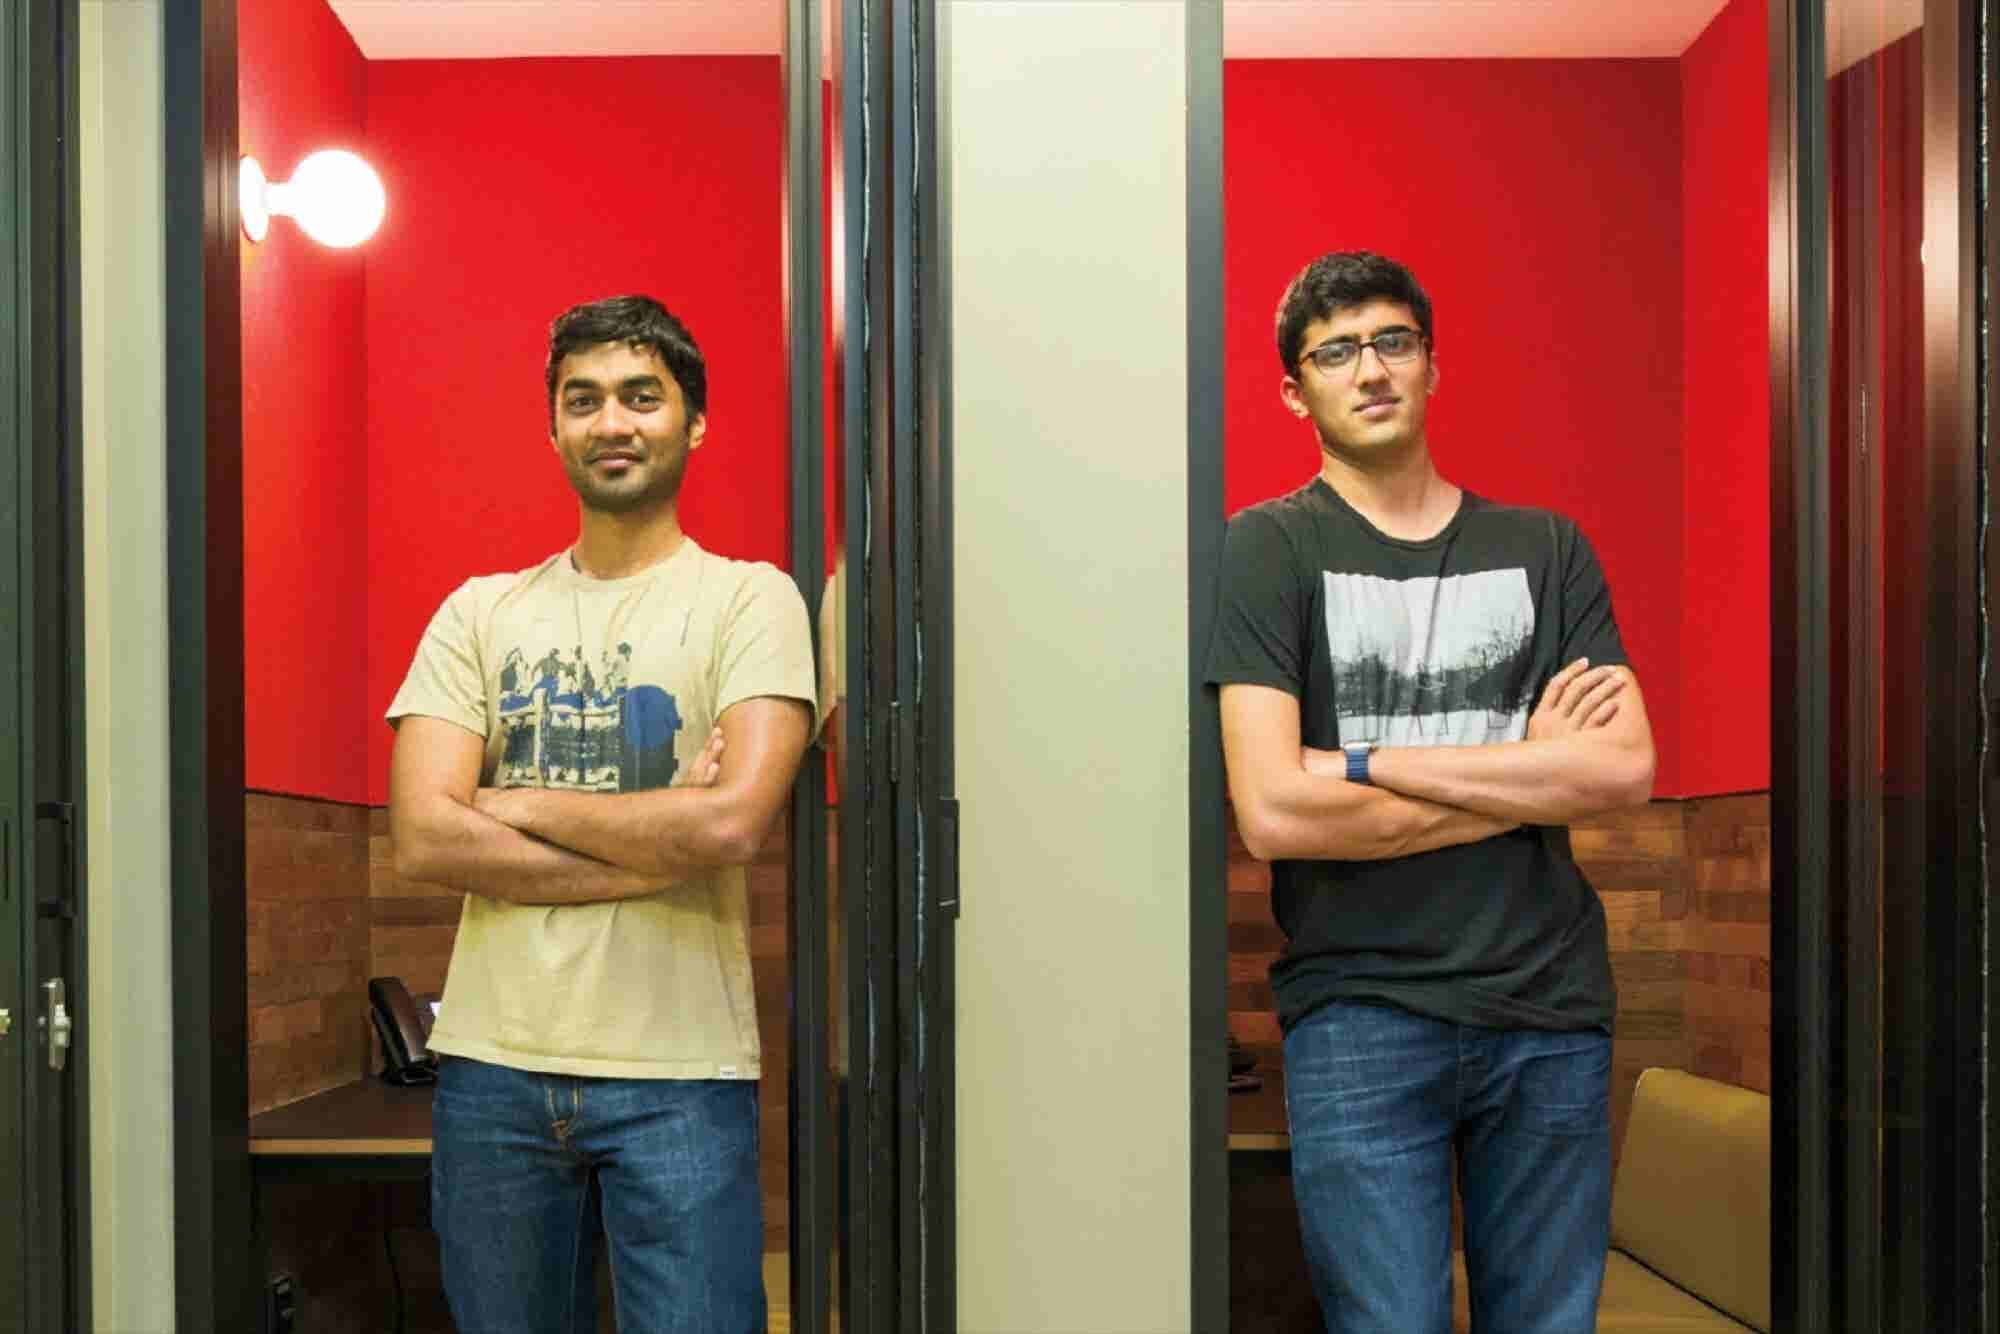 How a Startup Is Helping Retailers by Using Digital Tests in Physical Spaces